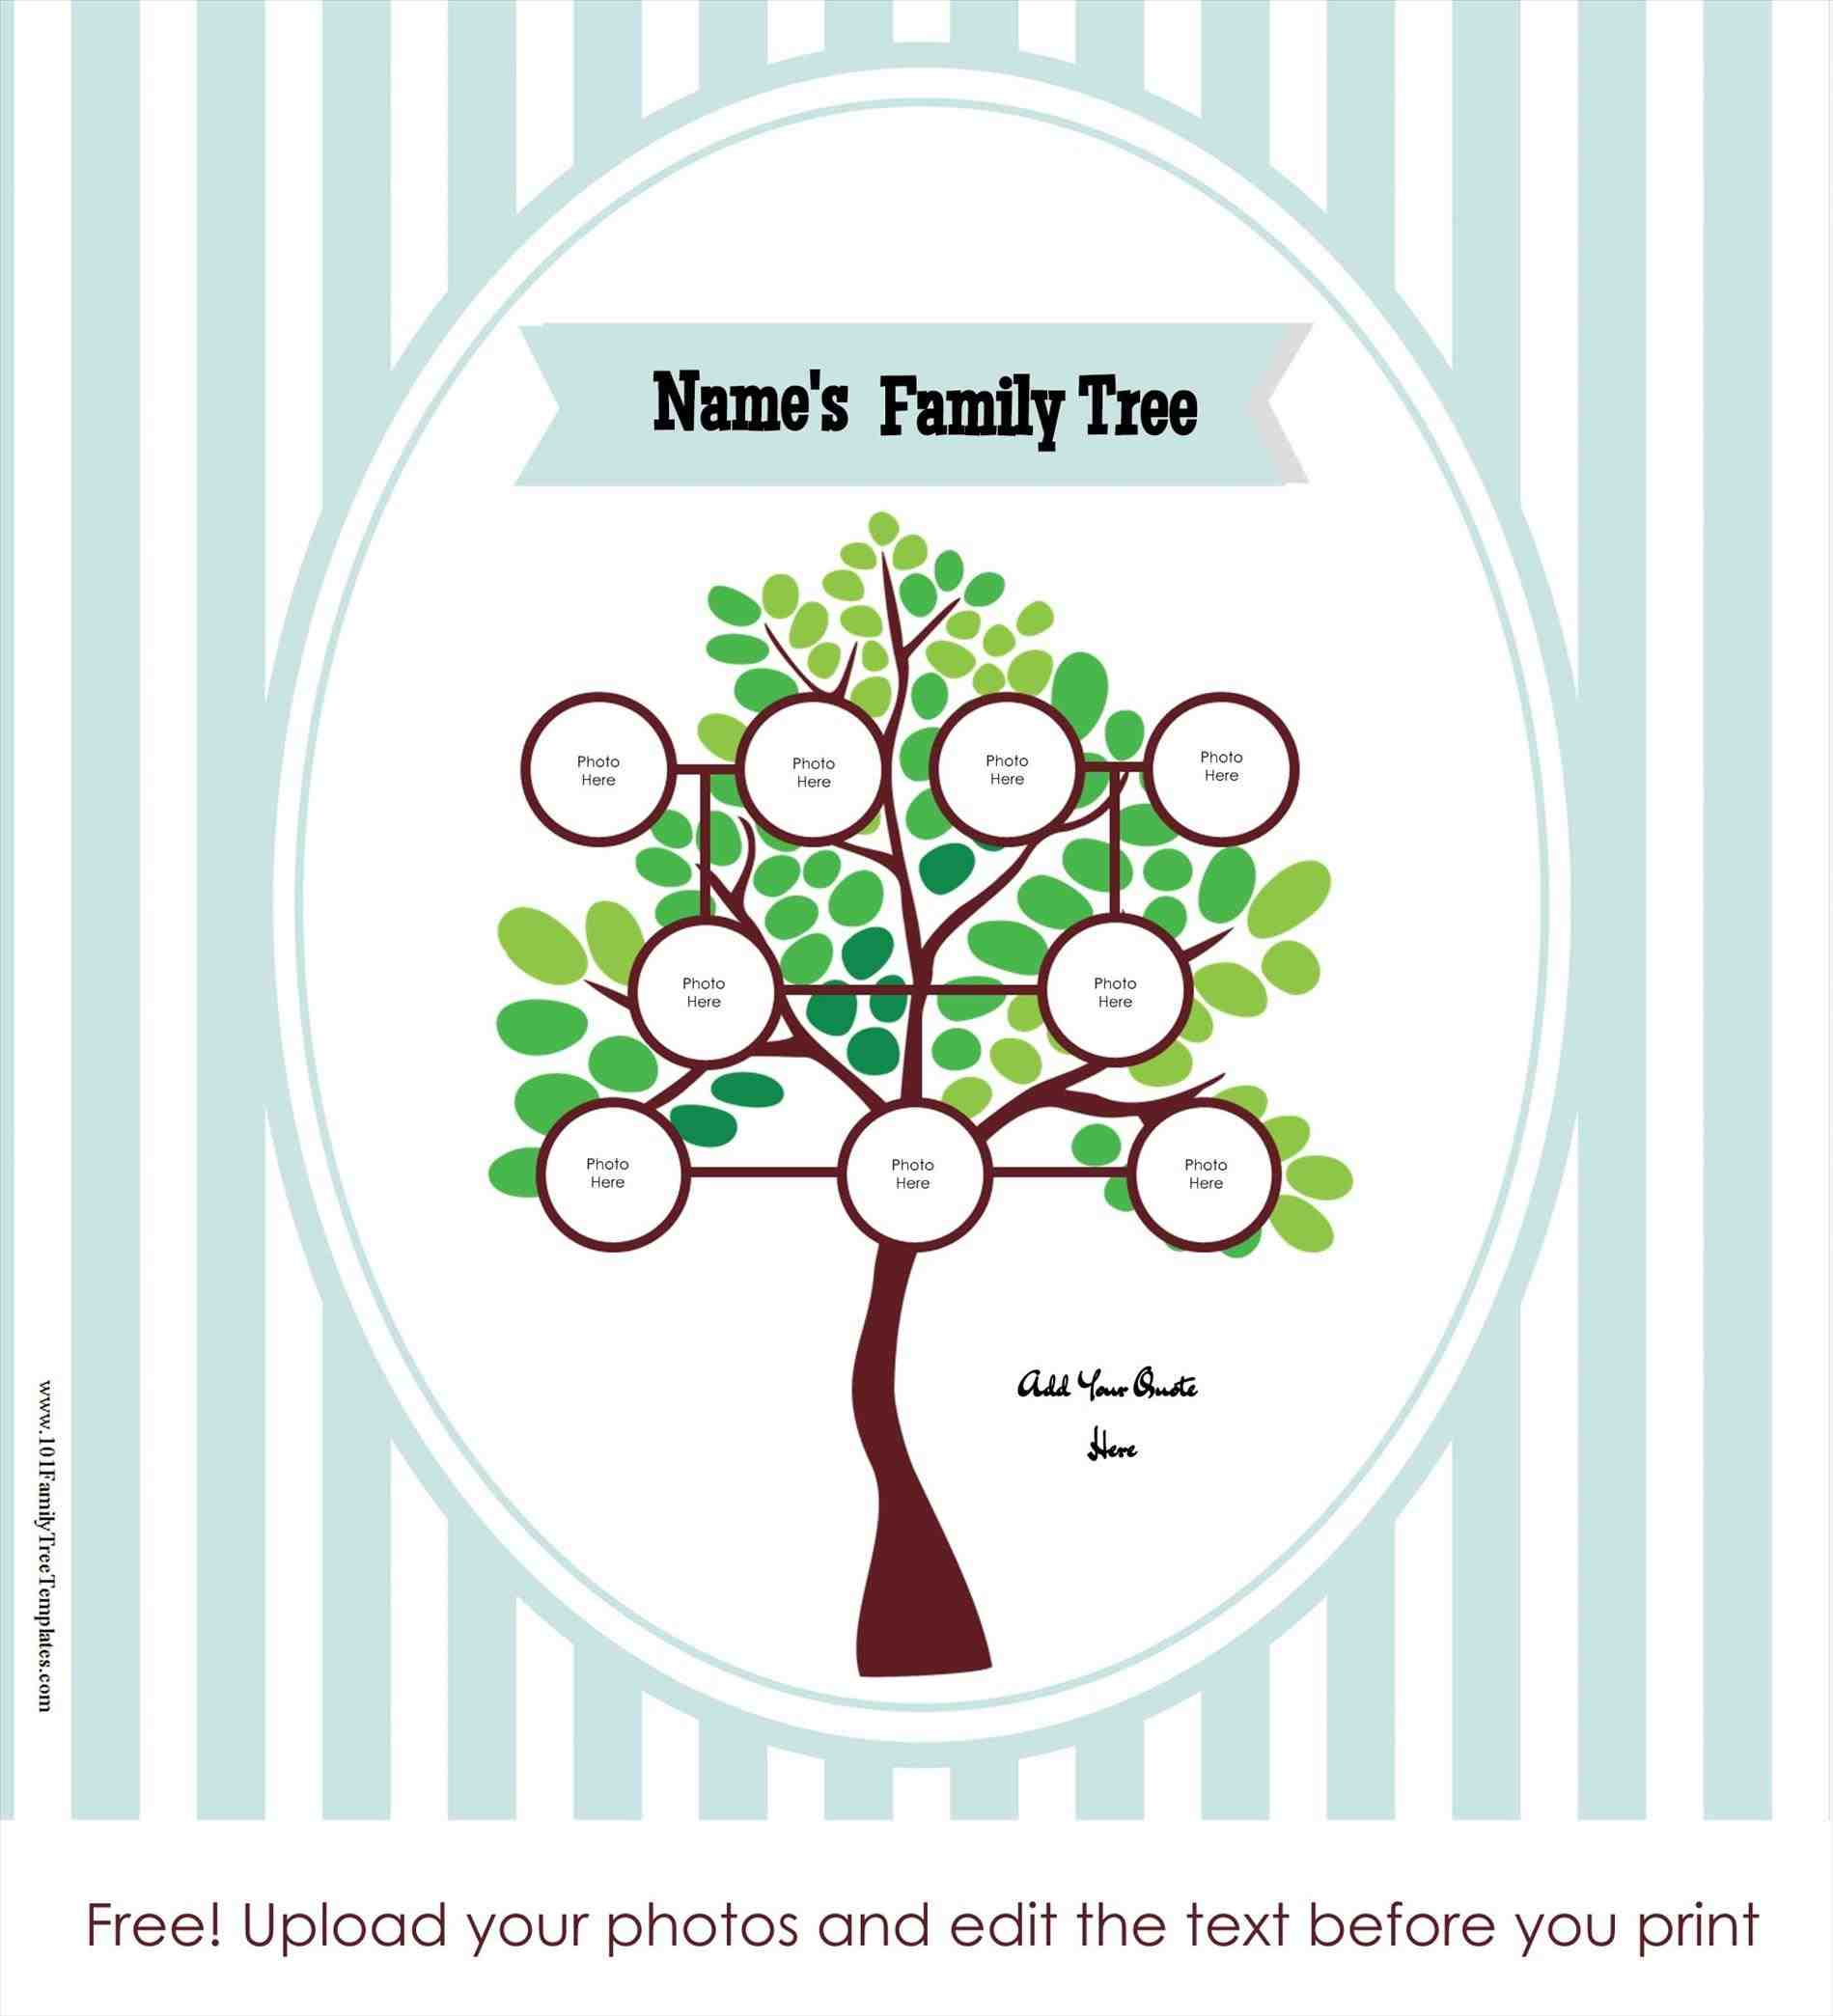 Free-Online-Family-Tree-Template-Tree-Maker-Templates - Family Tree Maker Free Printable